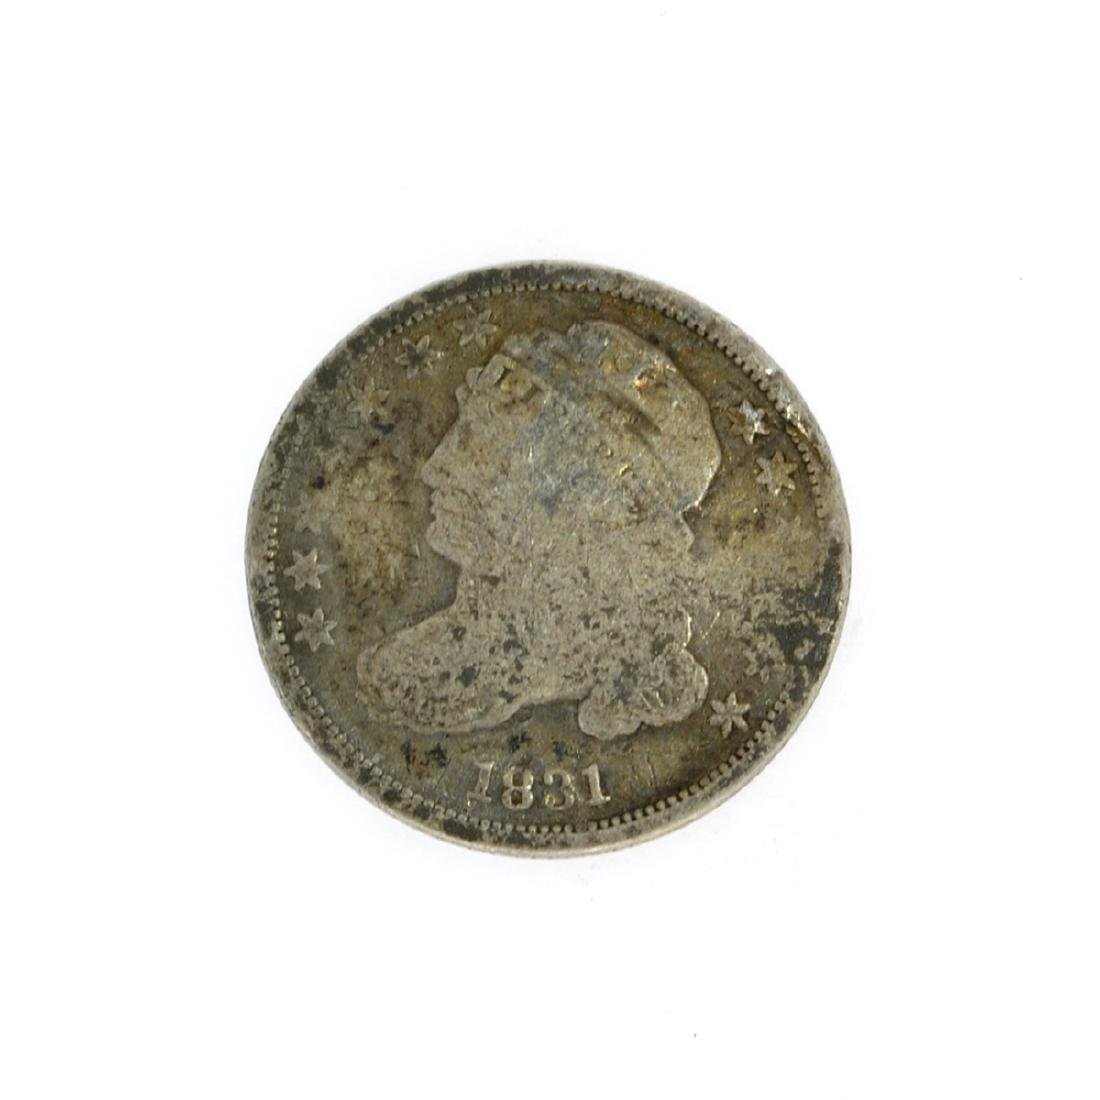 1831 Capped Bust Dime Coin